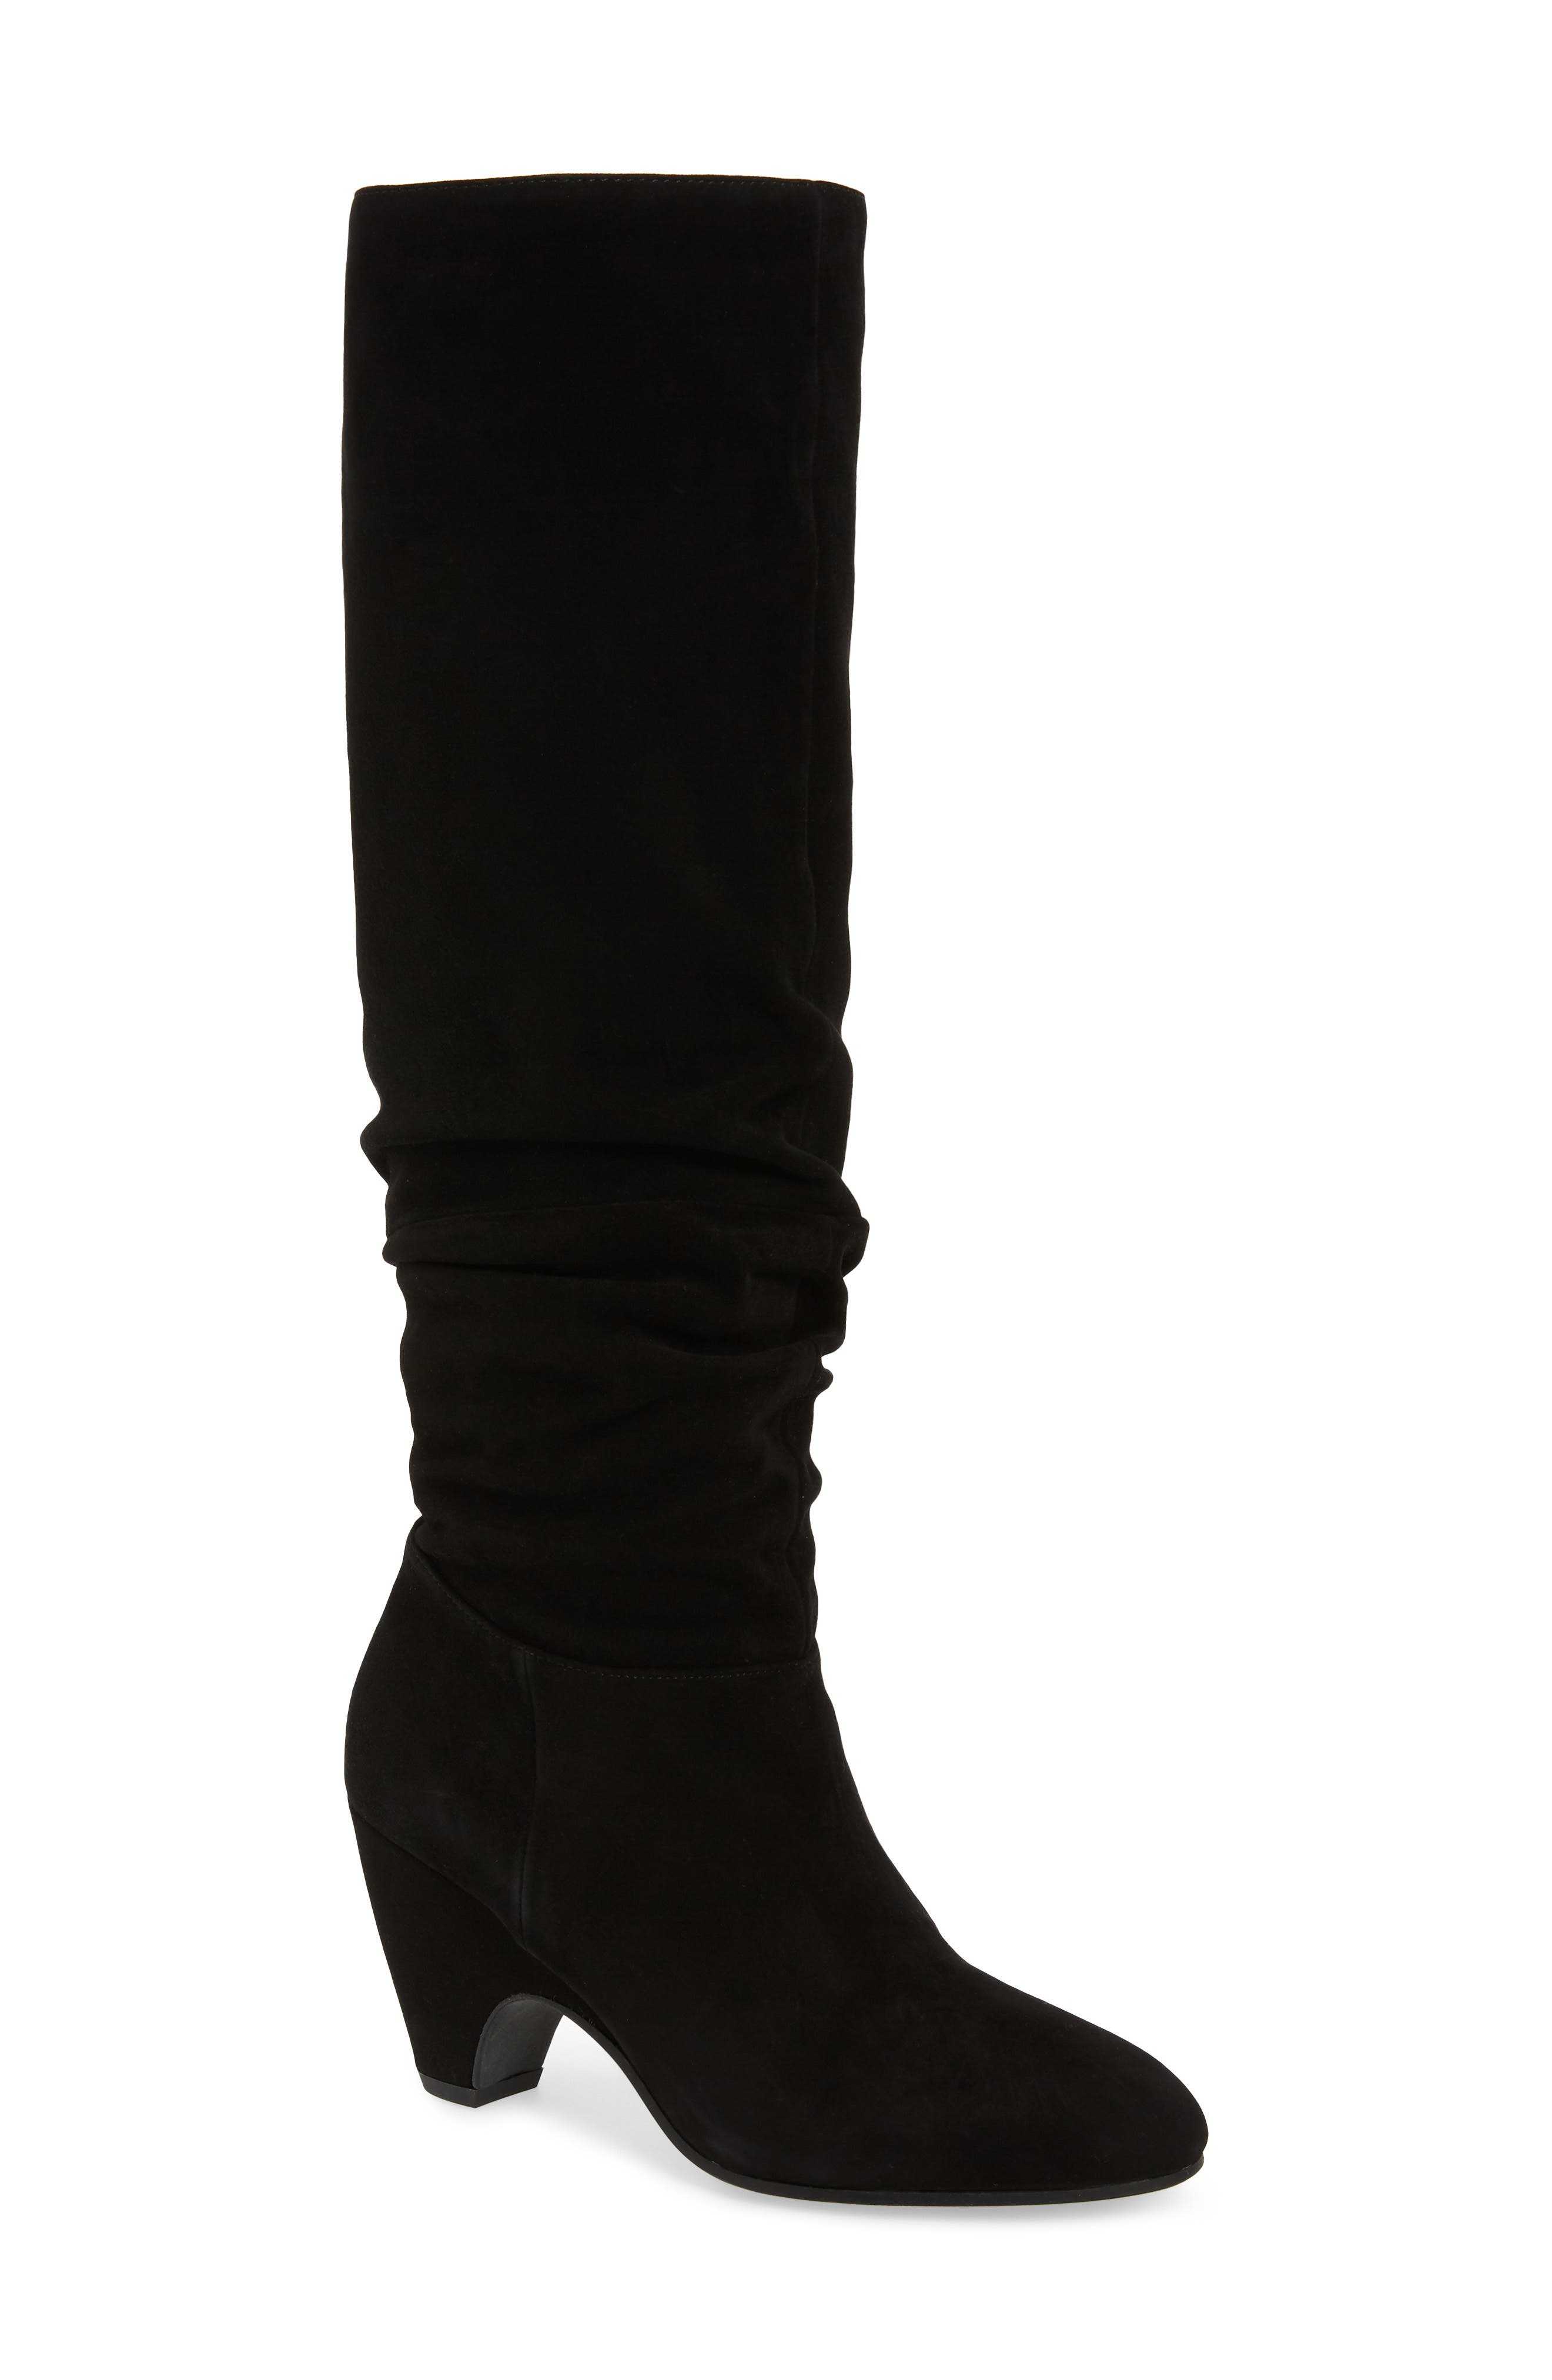 Eileen Fisher Ditto Knee High Boot, Black